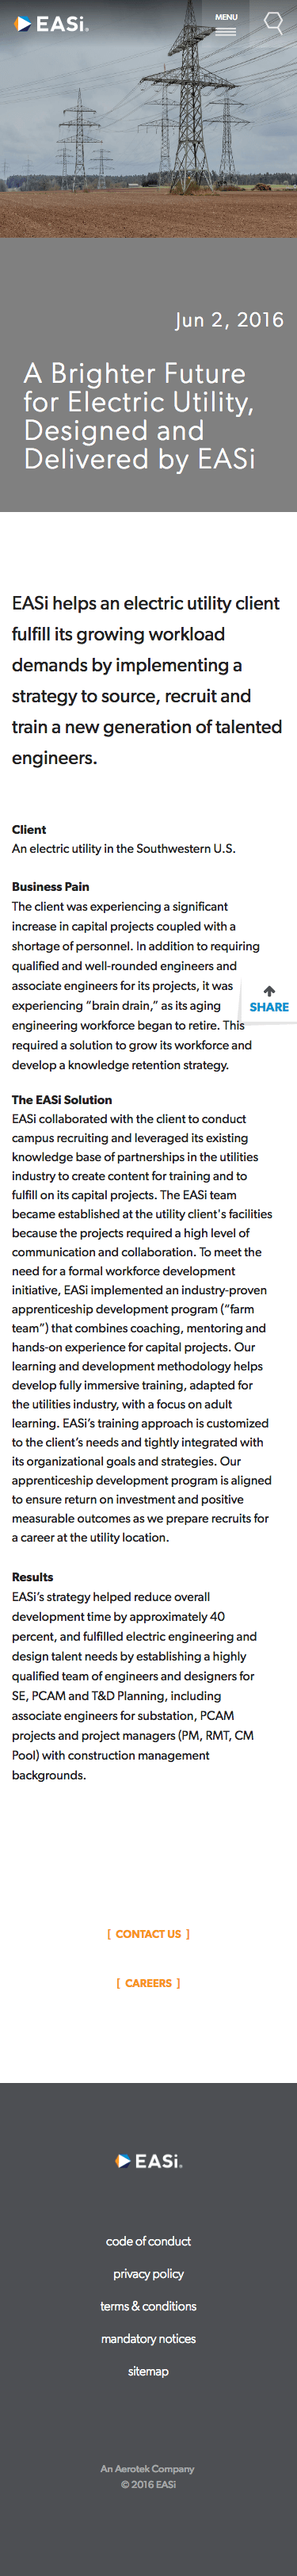 screencapture-easi-insights-case-studies-a-brighter-future-for-electric-utility-designed-and-delivered-by-easi-1475632938131